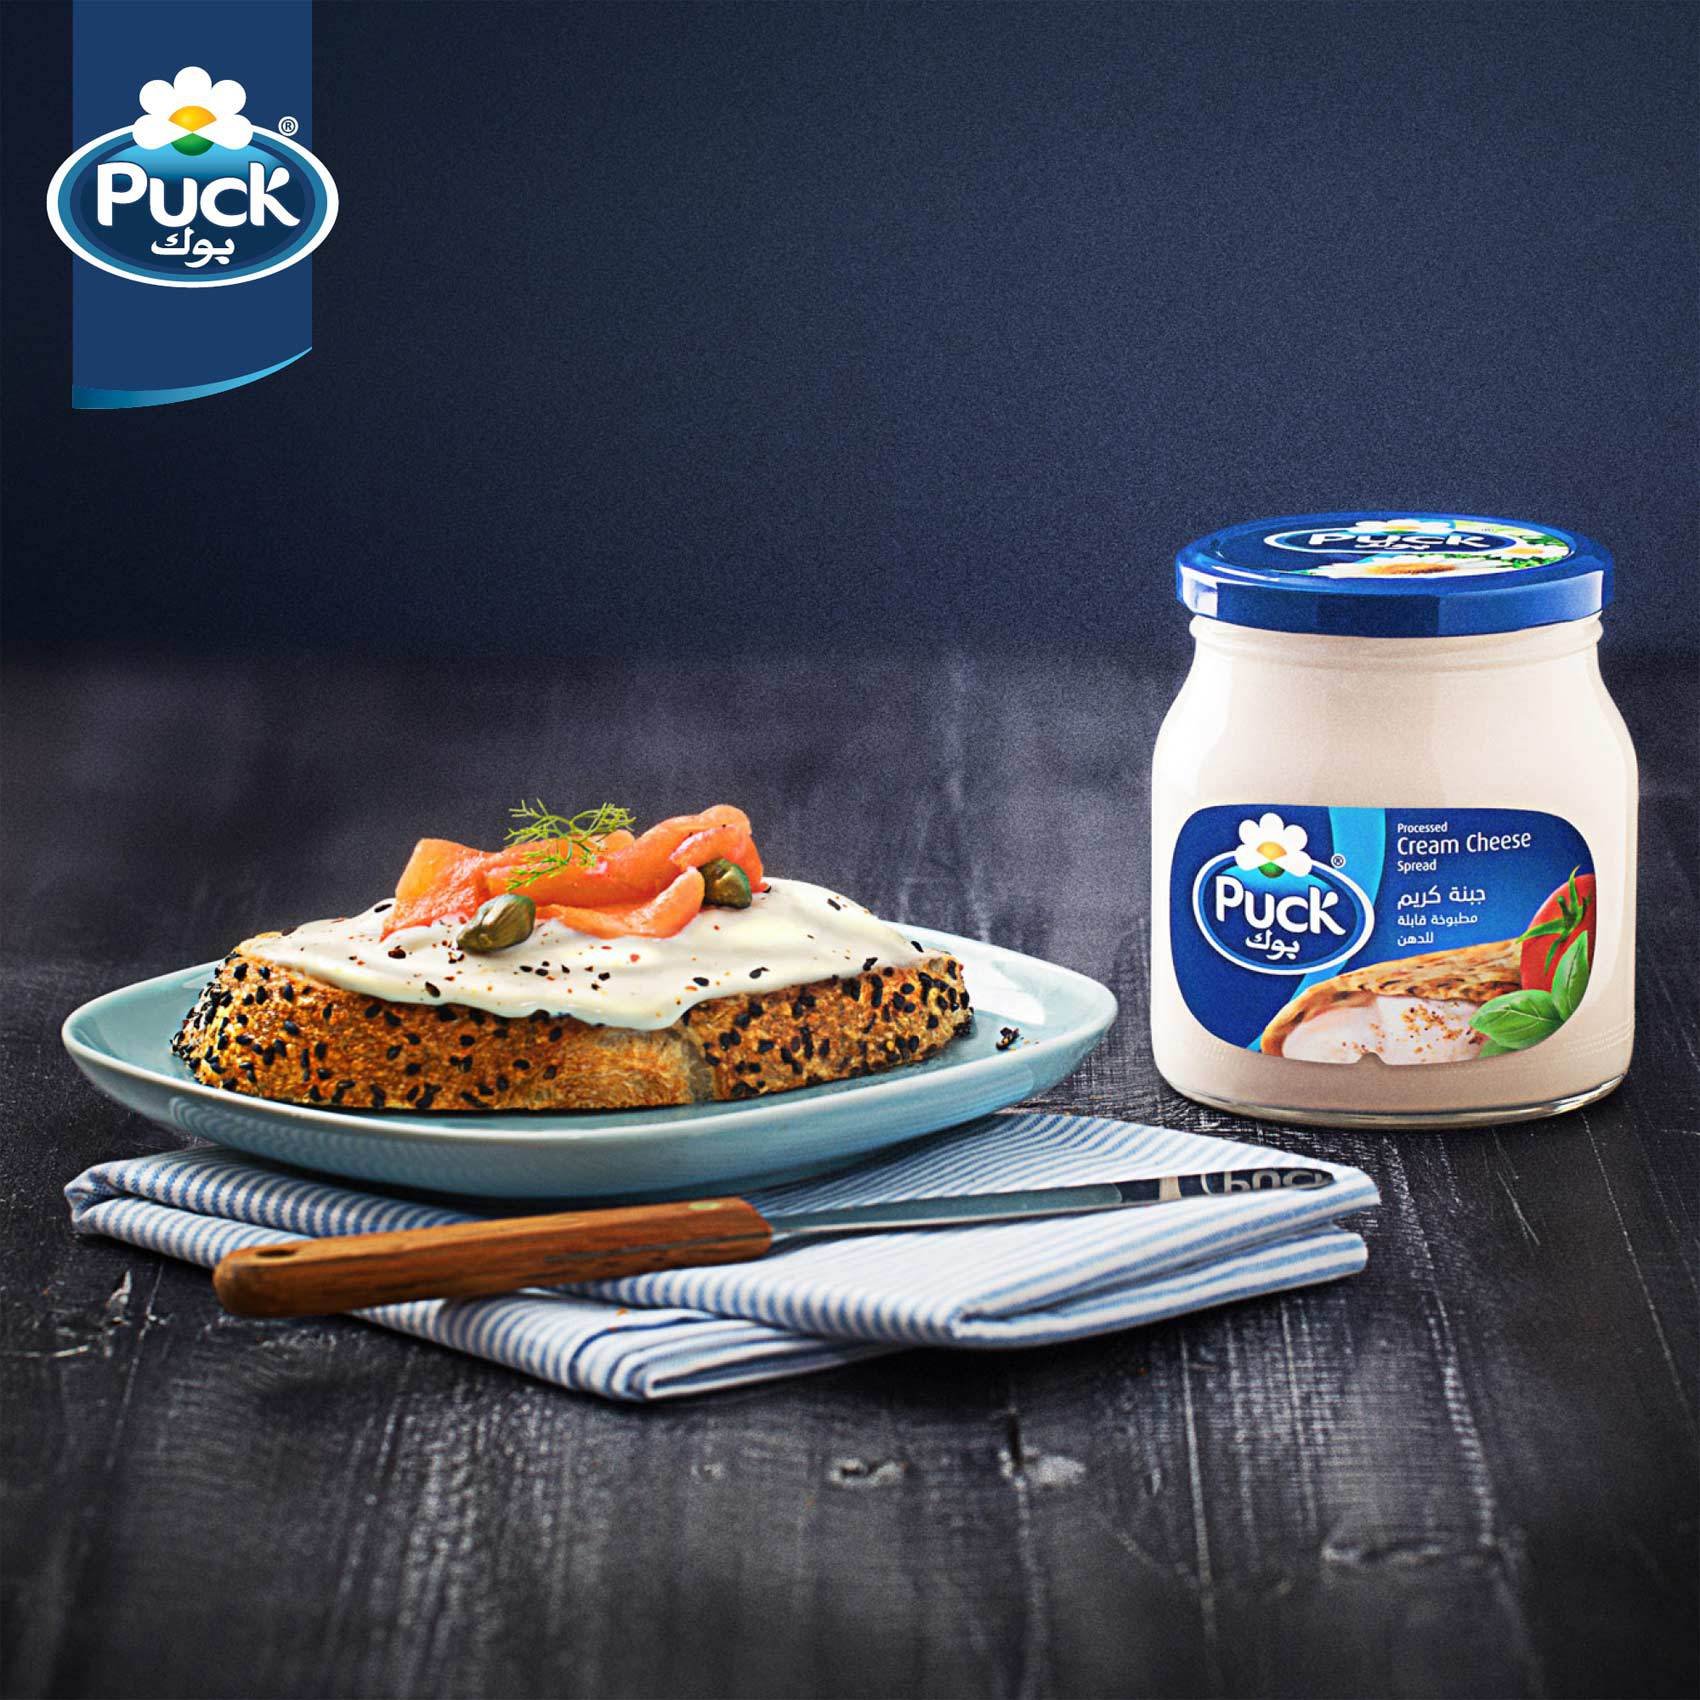 Puck Processed Cream Cheese Spread 240g